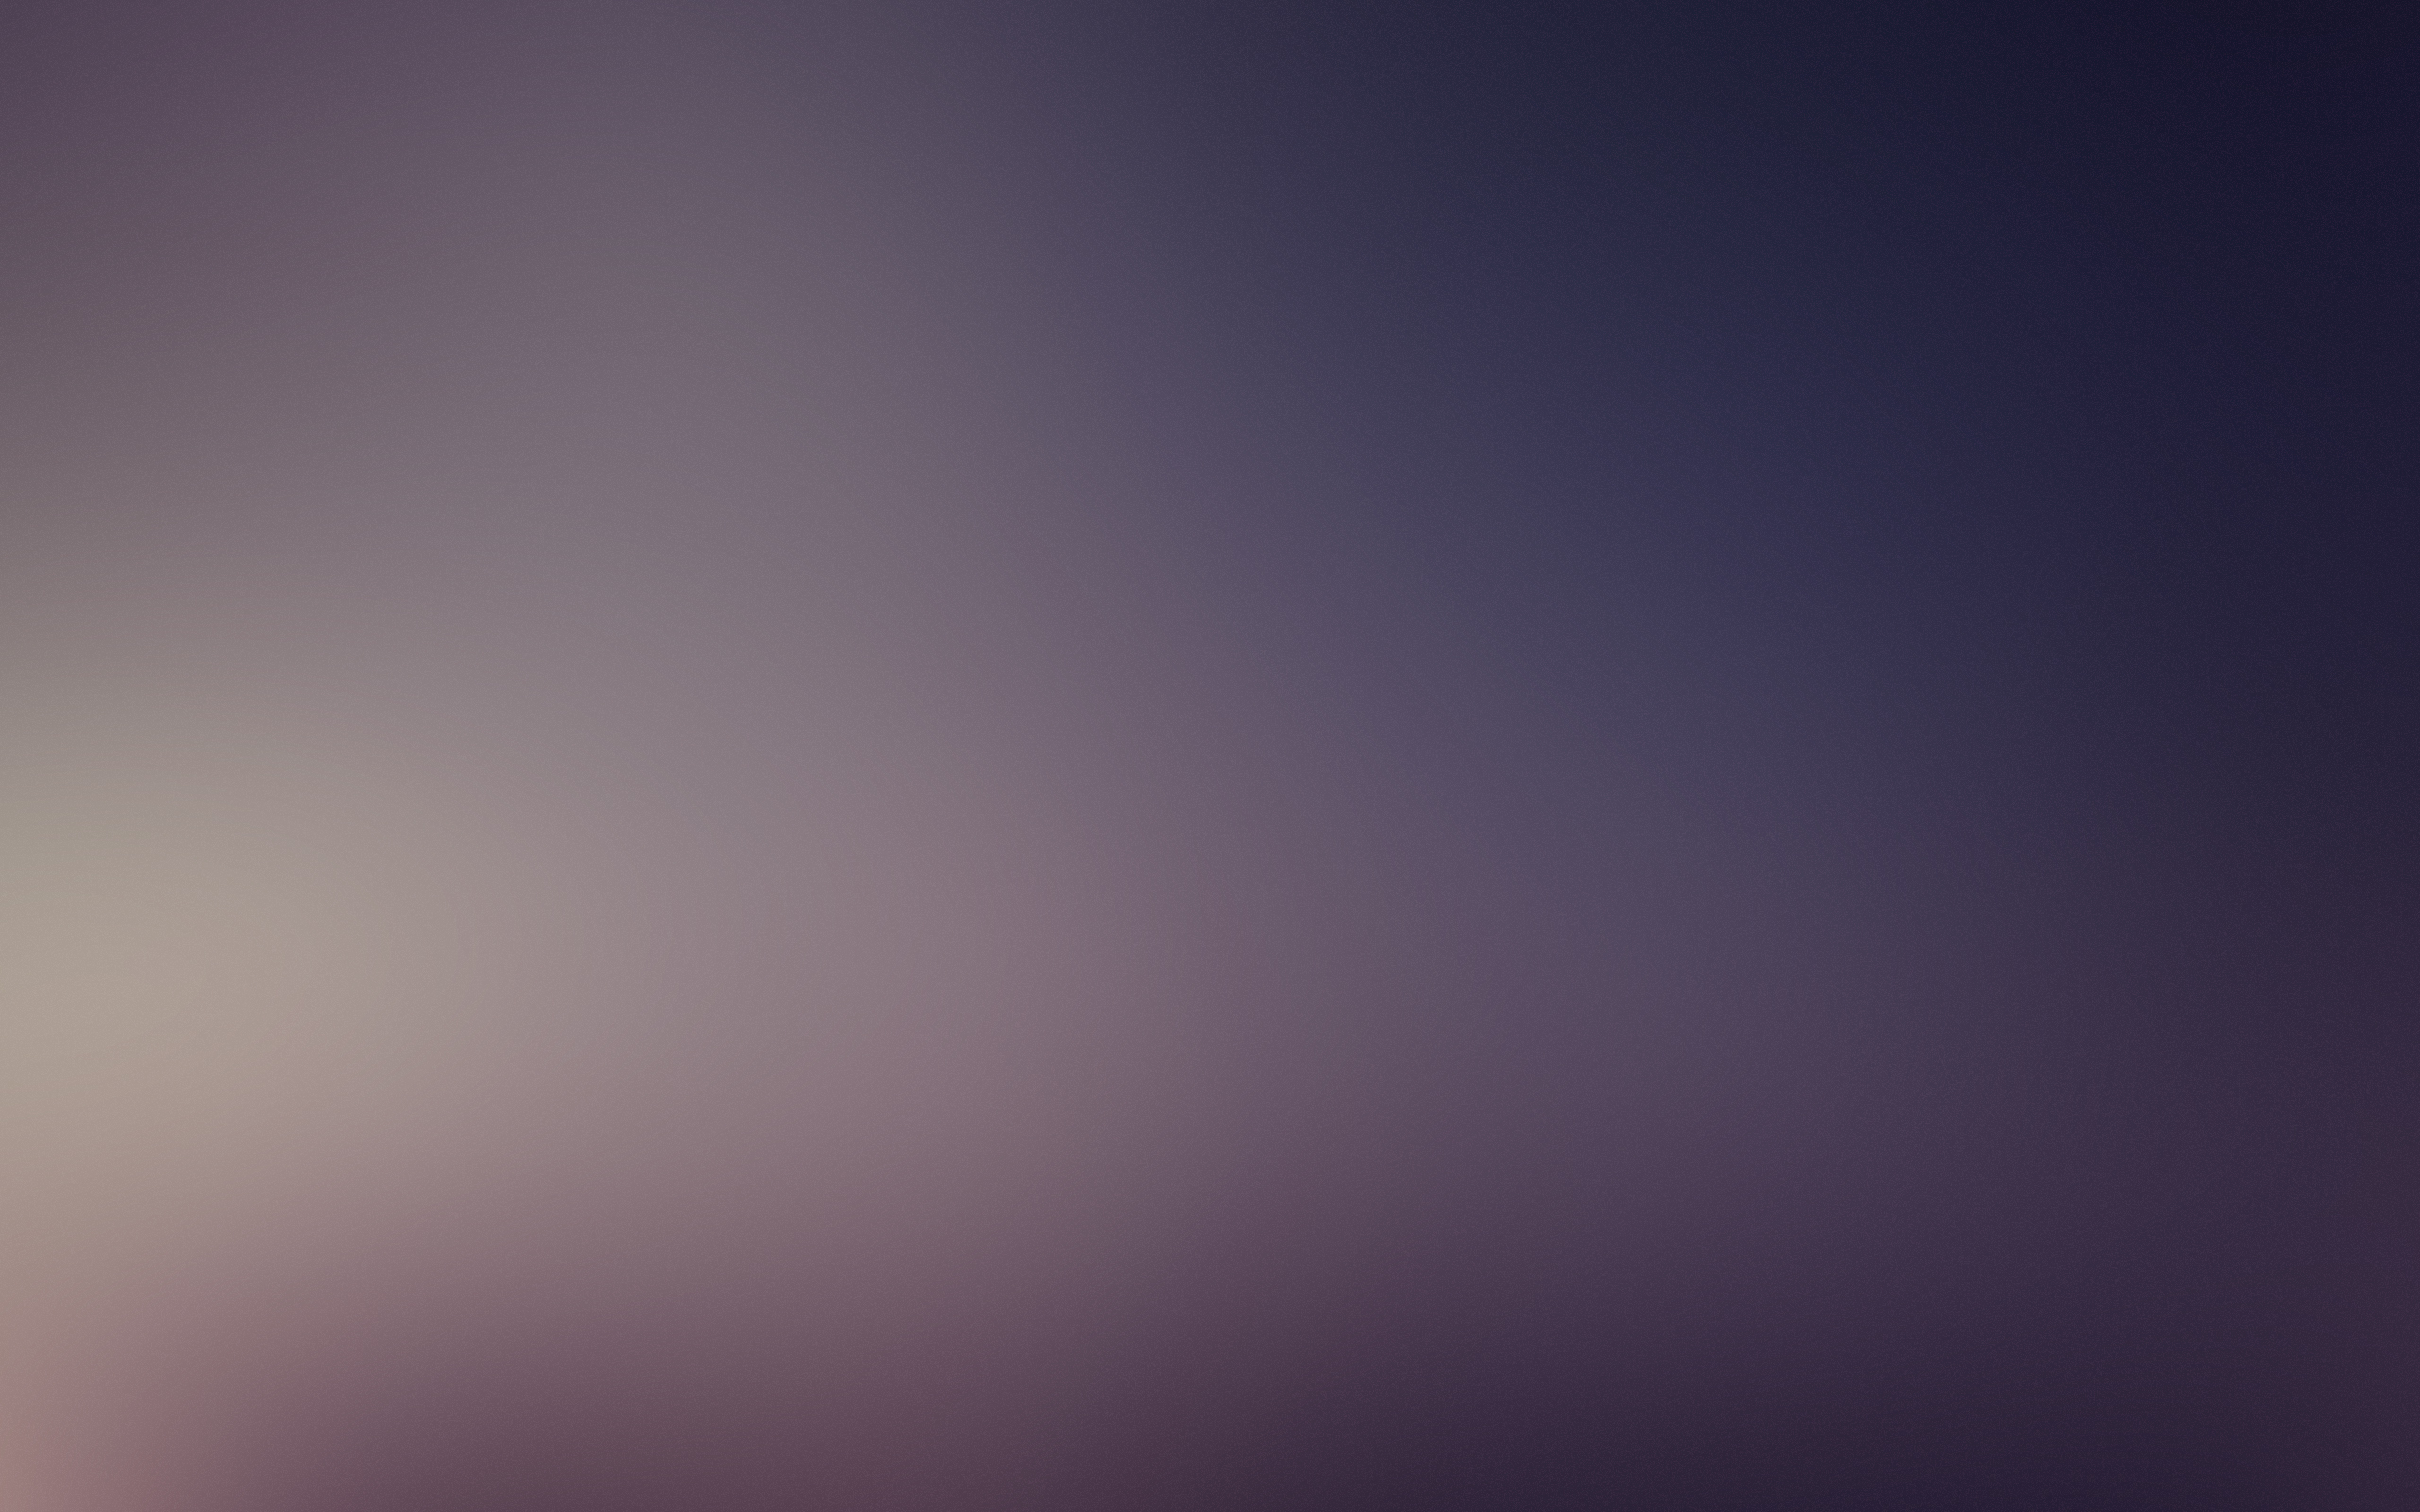 background texture gradient abstract simple purple hd wallpaper 2560x1600